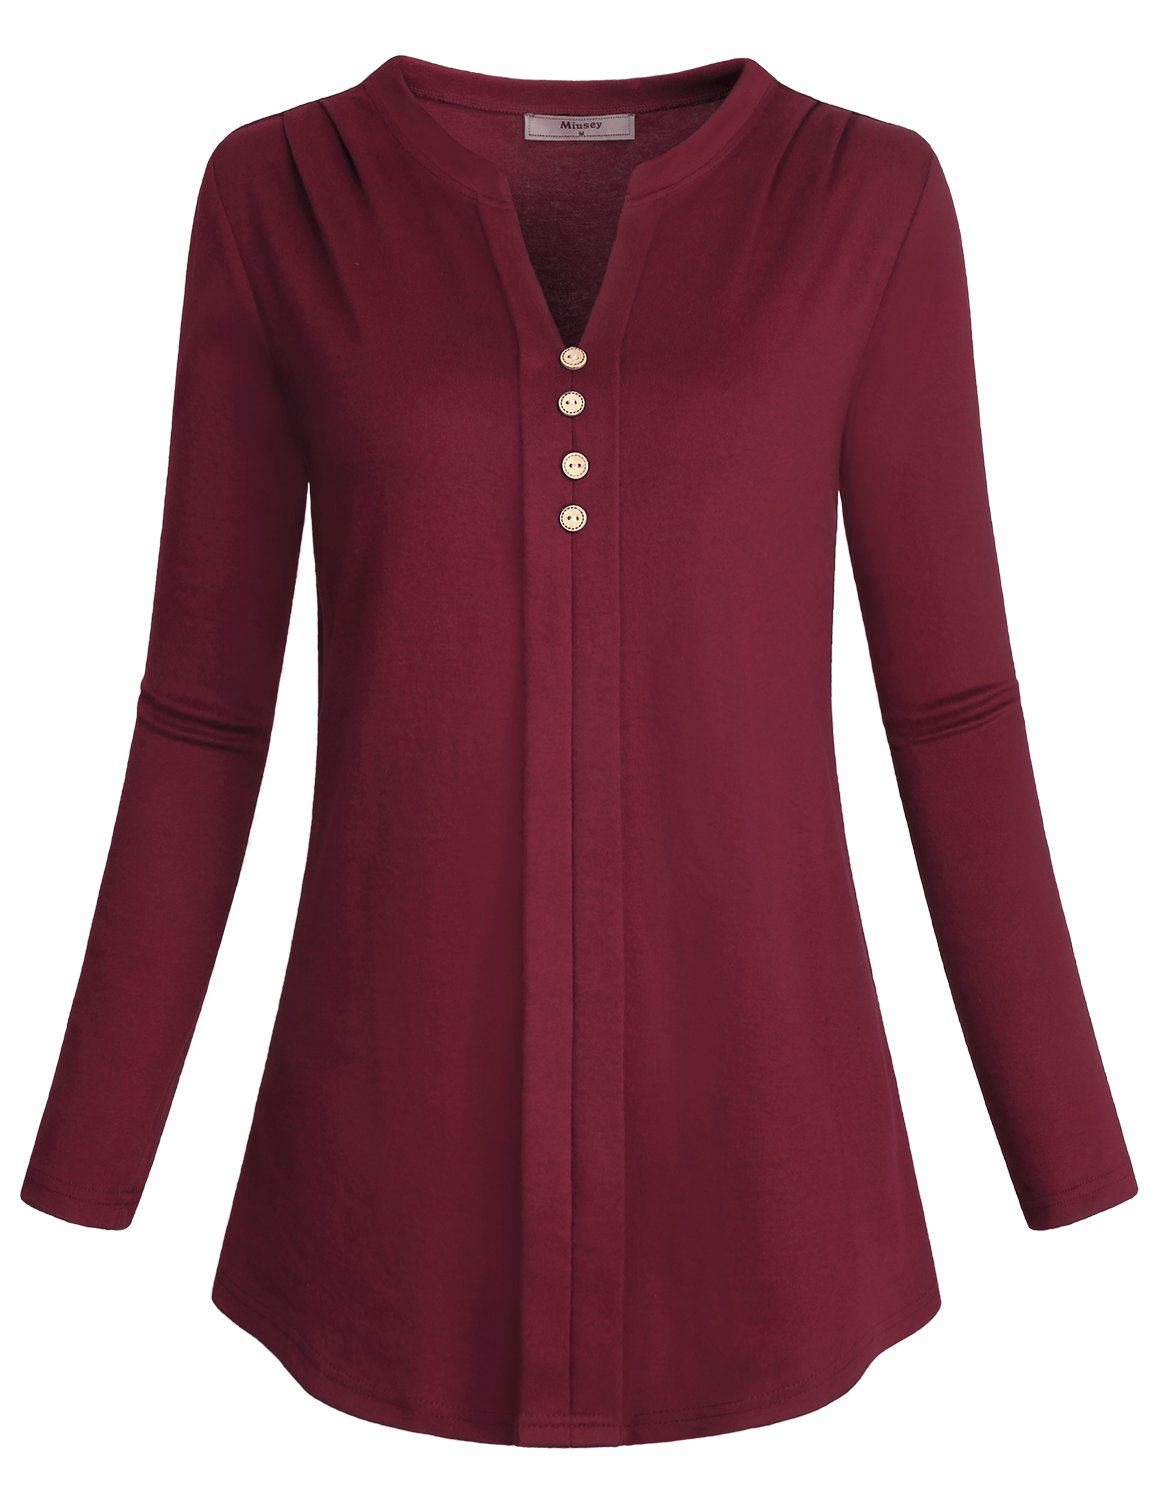 Tunic Tops for Leggings for Women, Miusey Ladies Stand Collar Vneck Shirts V-Neck Long Sleeve Blouses Button Pleat Front Rouched Vintage A Line Henley Knitted Stretchy Pullover Flared Sweatshirt Red M